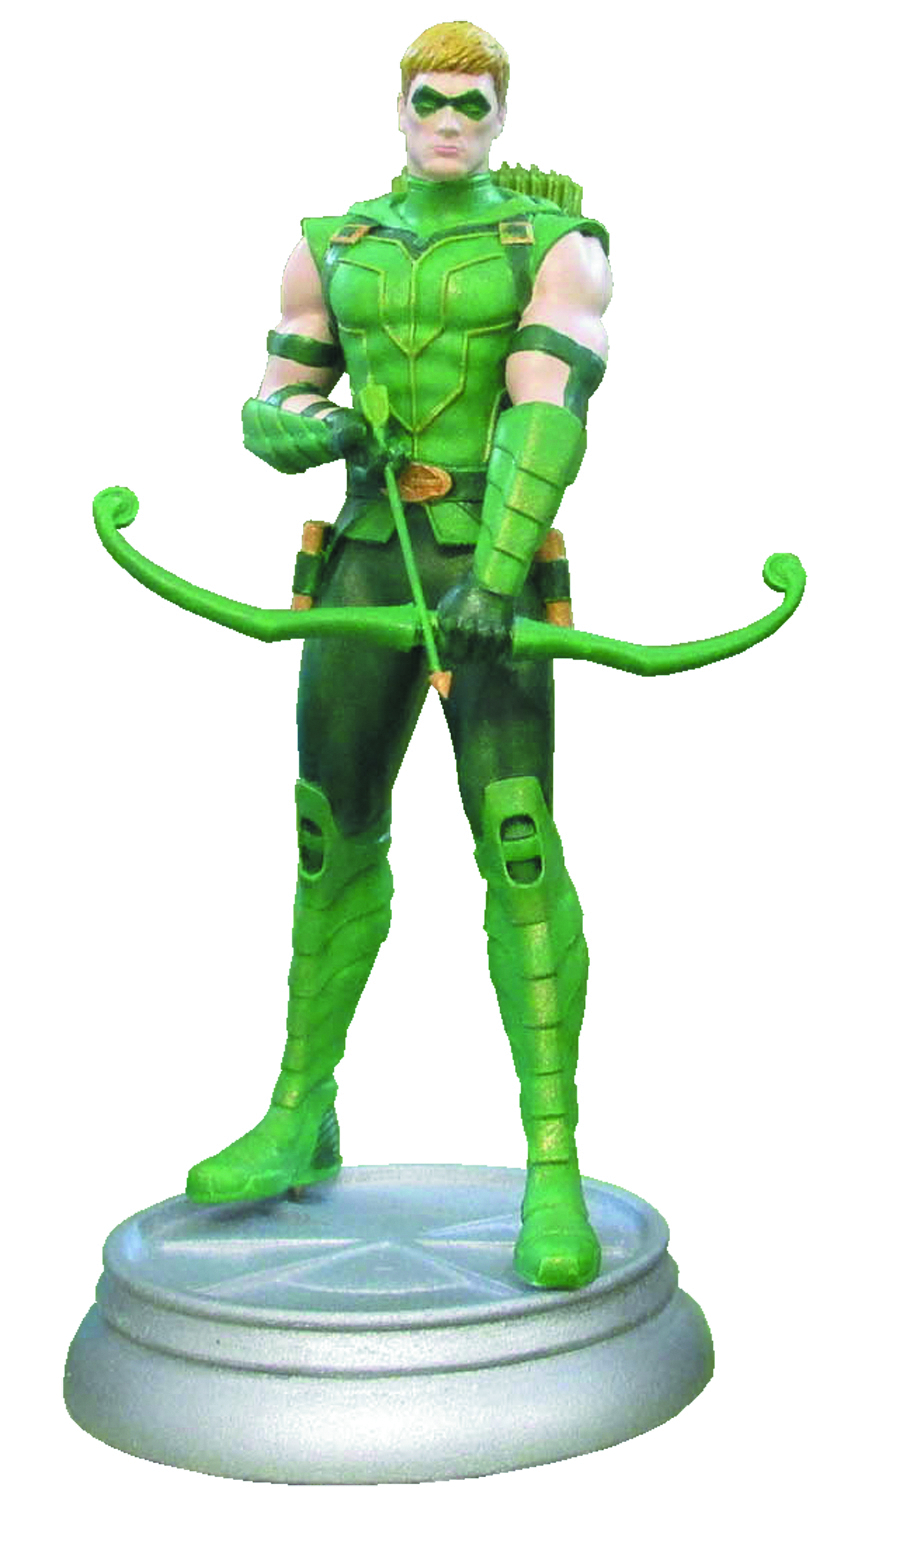 DC SUPERHERO CHESS FIG COLL MAG #43 GREEN ARROW WHITE PAWN